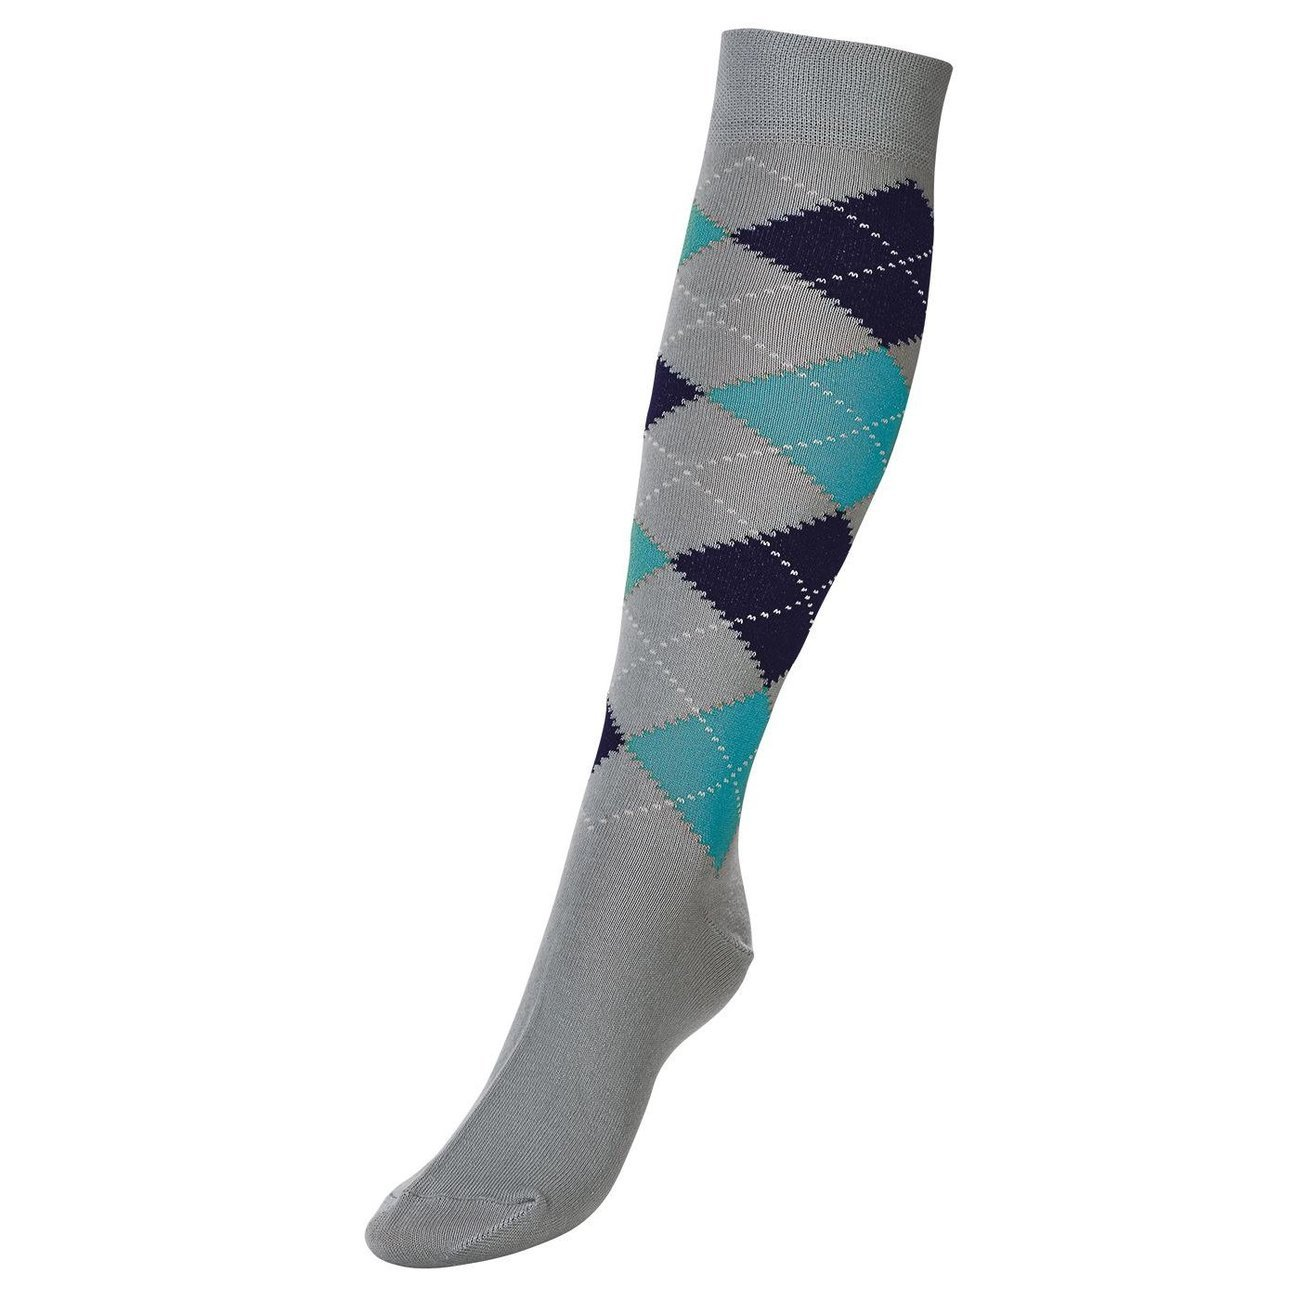 BUSSE Socken Basic Karo III, Gr. 31-34, grey/atoll/navy